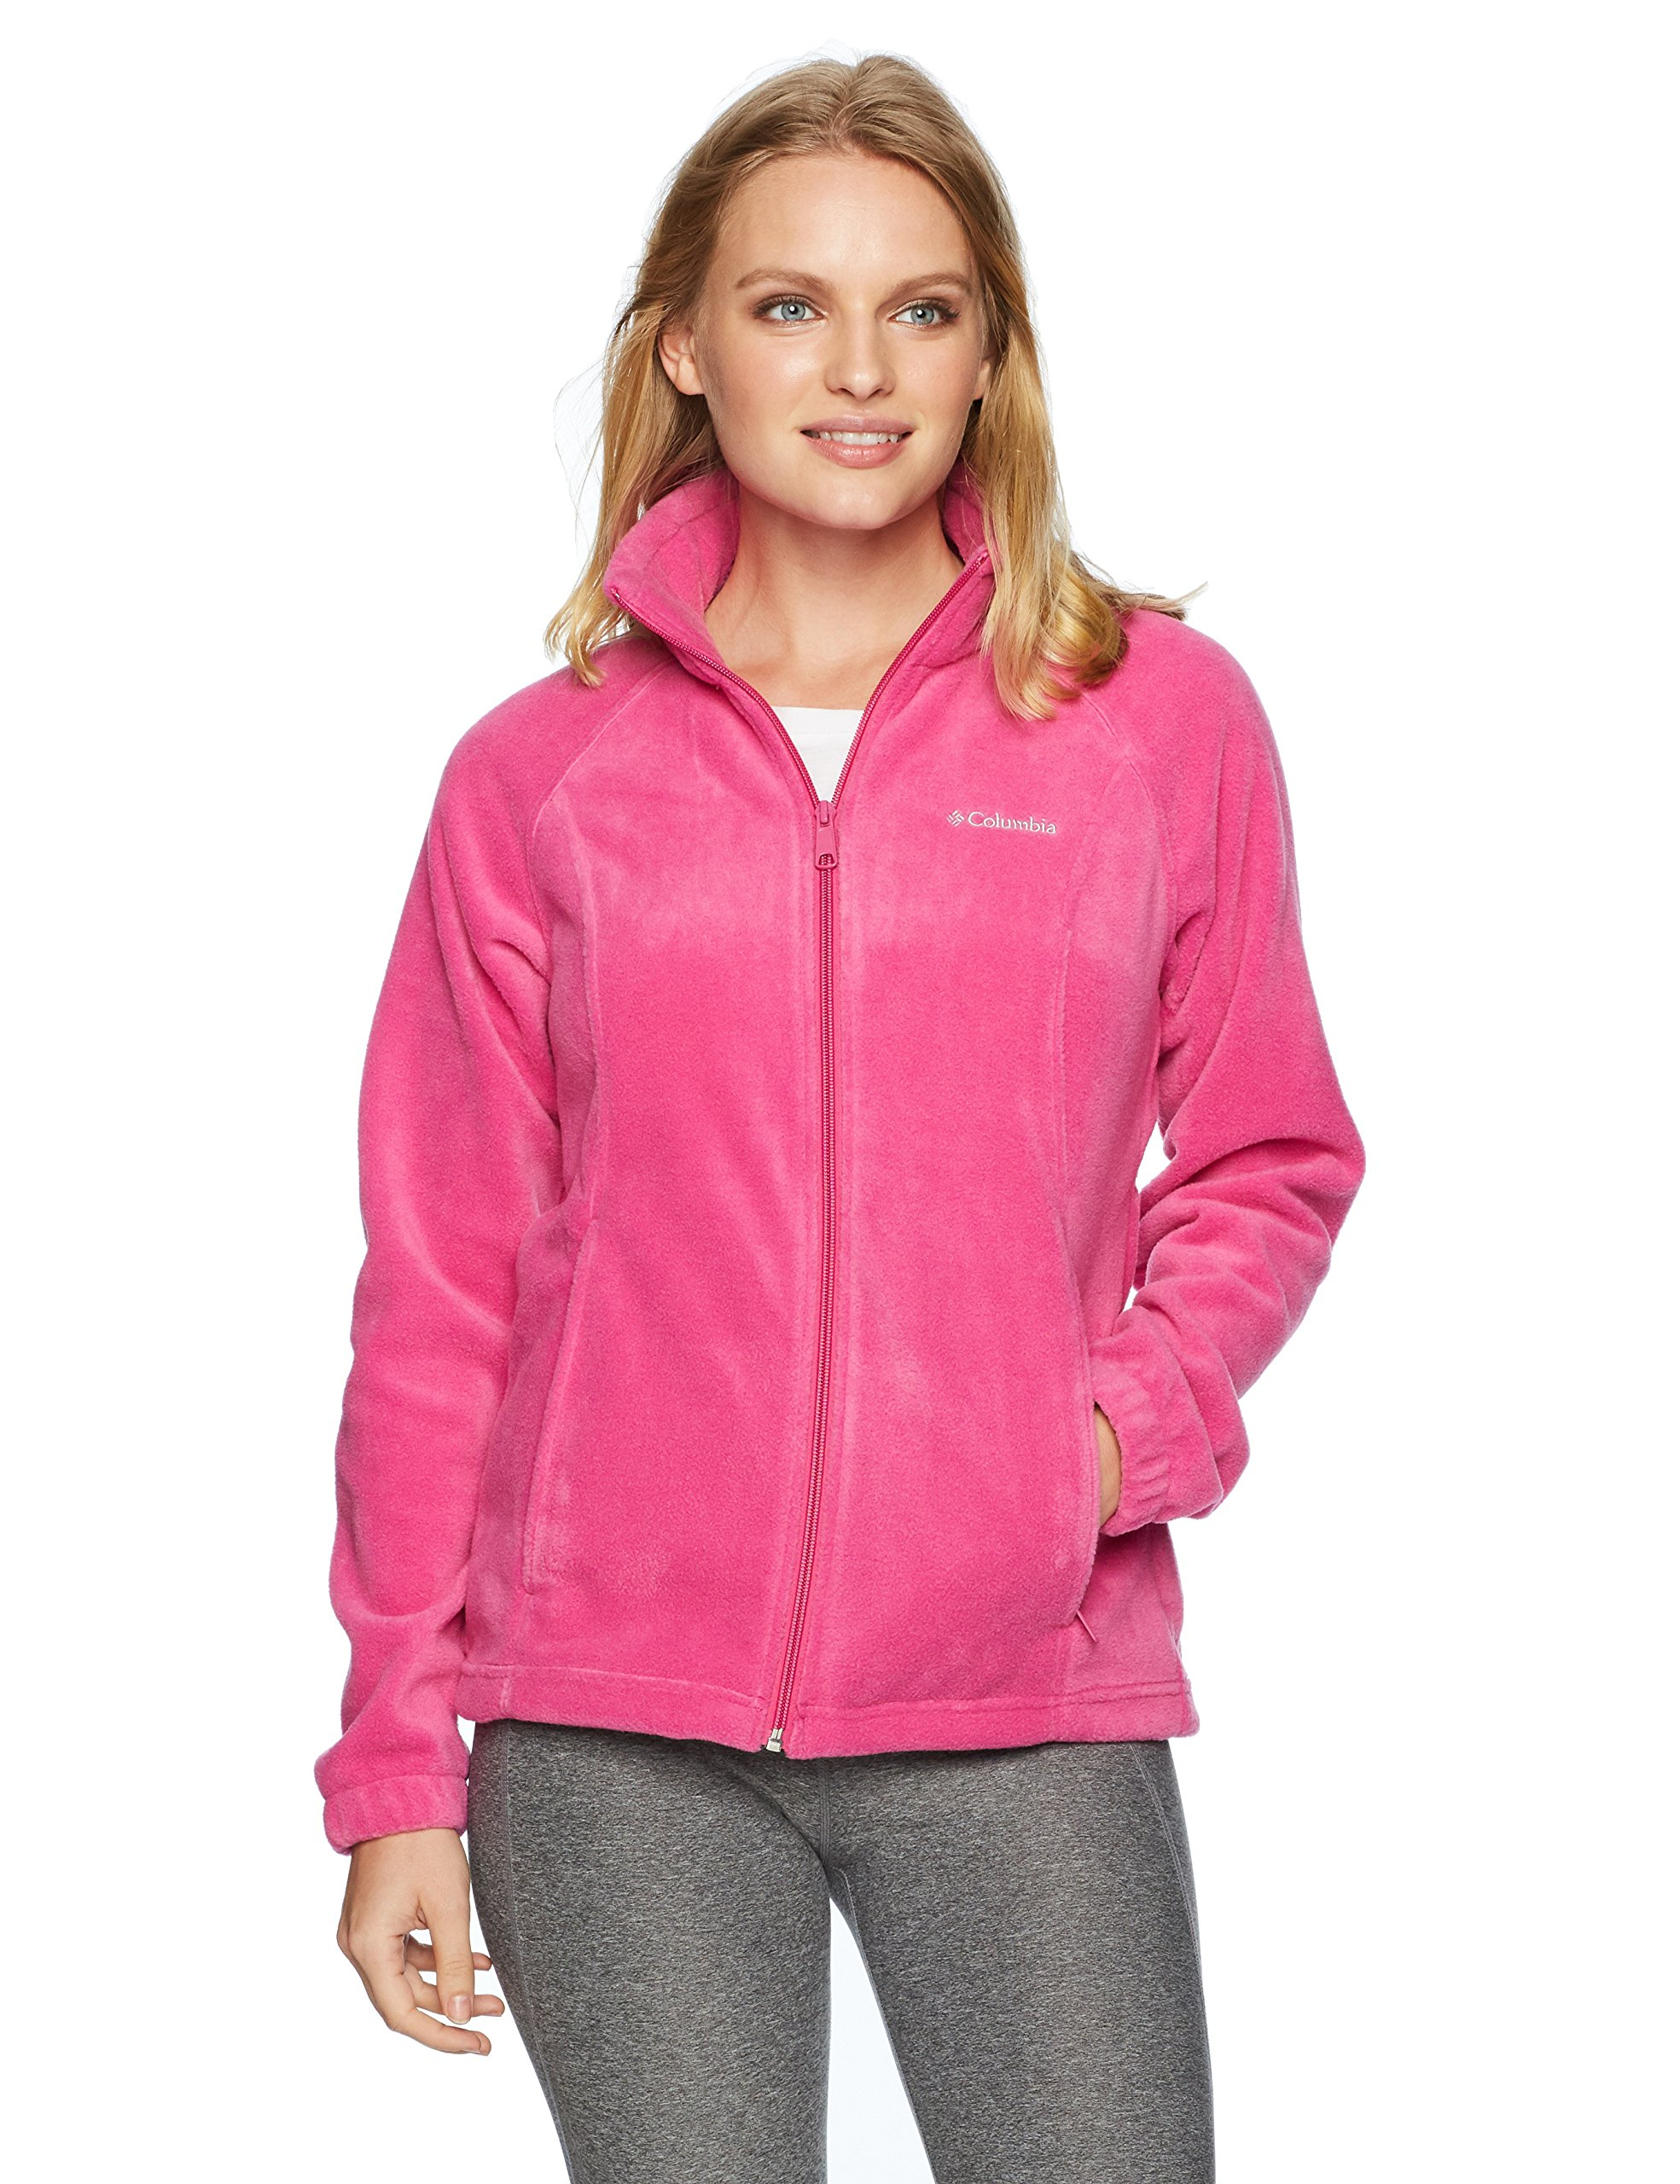 Columbia Women's Petite Benton Springs Full Zip Jacket, Fuchsia, PXL